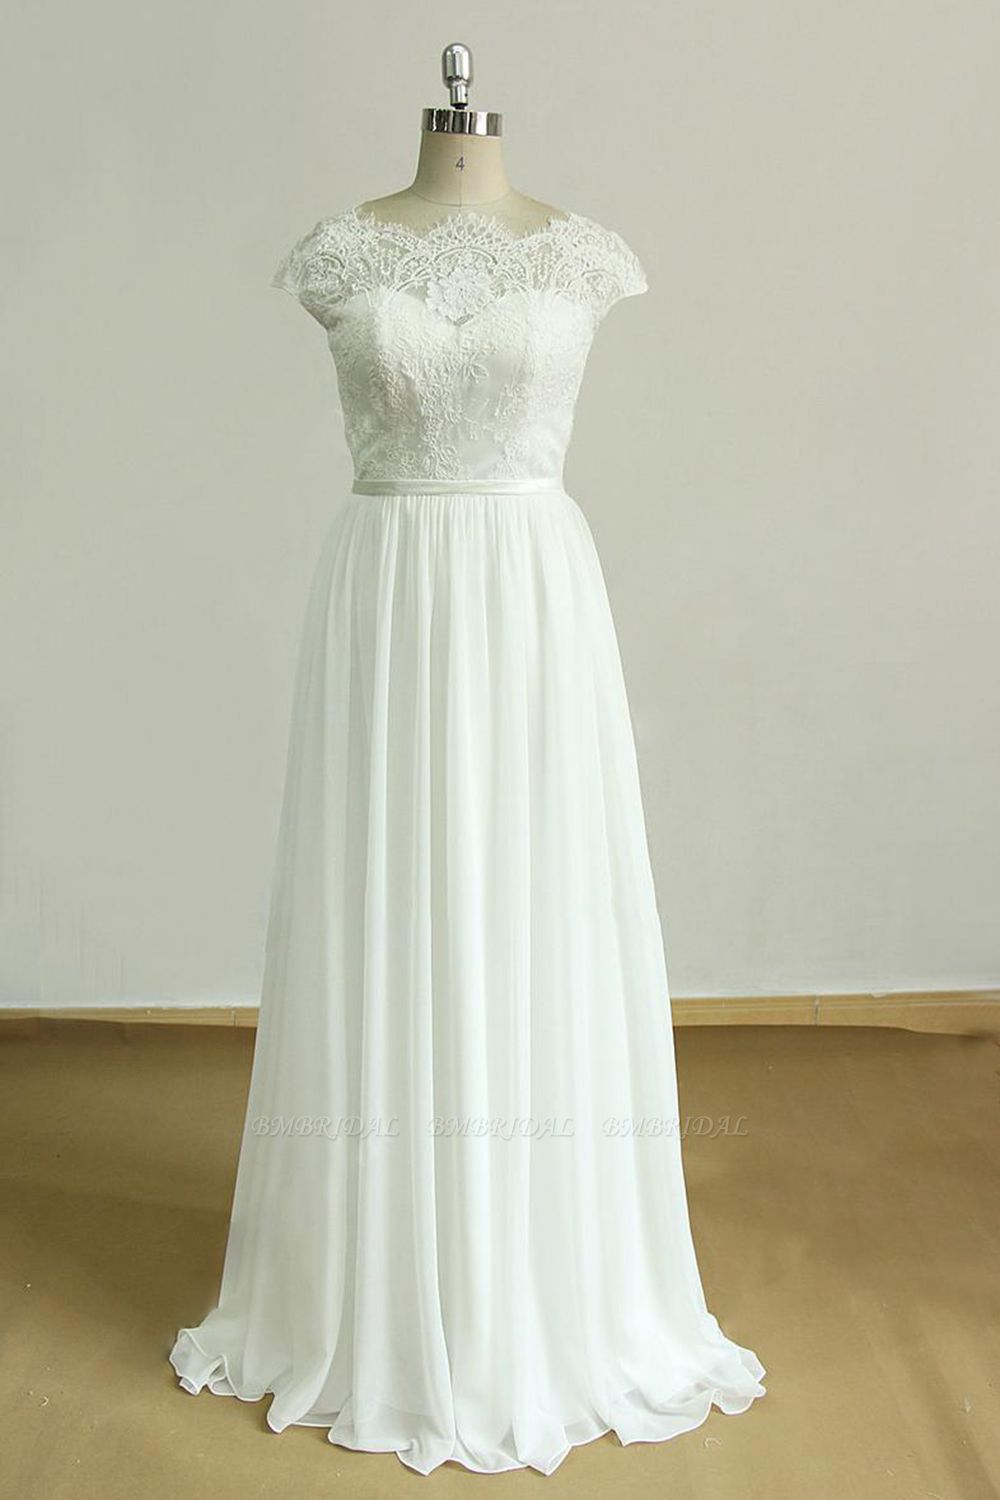 Gorgeous Appliques Chiffon Wedding Dress White Shortsleeves A-line Bridal Gowns On Sale